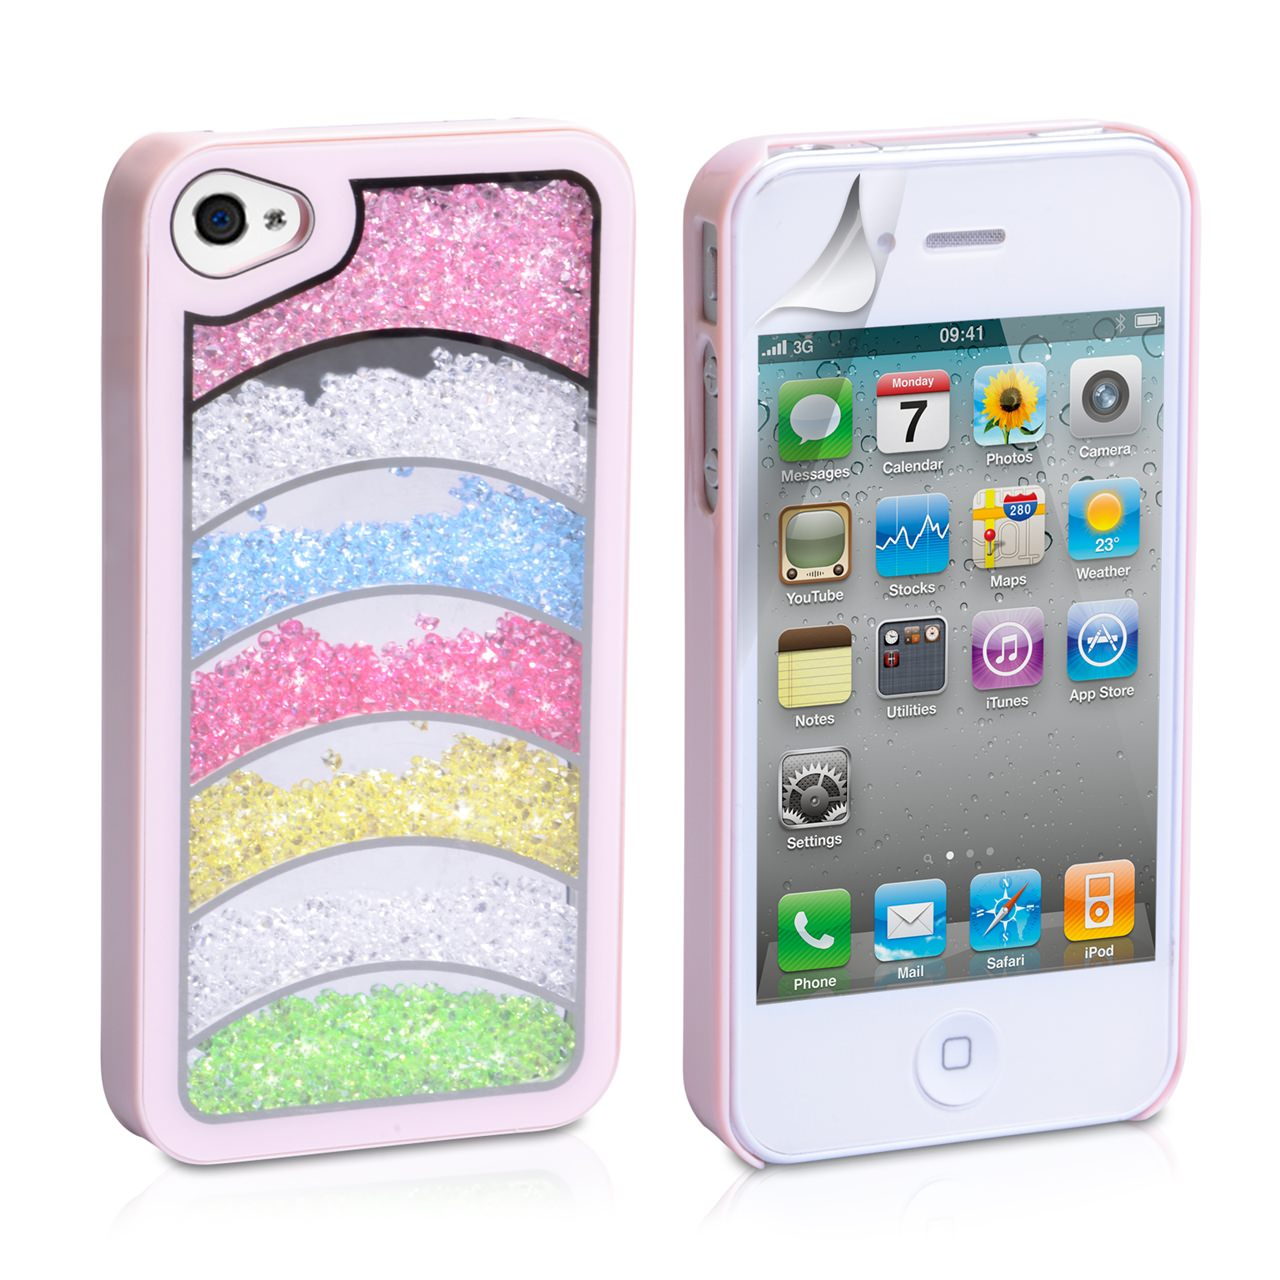 YouSave Accessories iPhone 4 / 4S Rainbow Bling Hard Case - Baby Pink